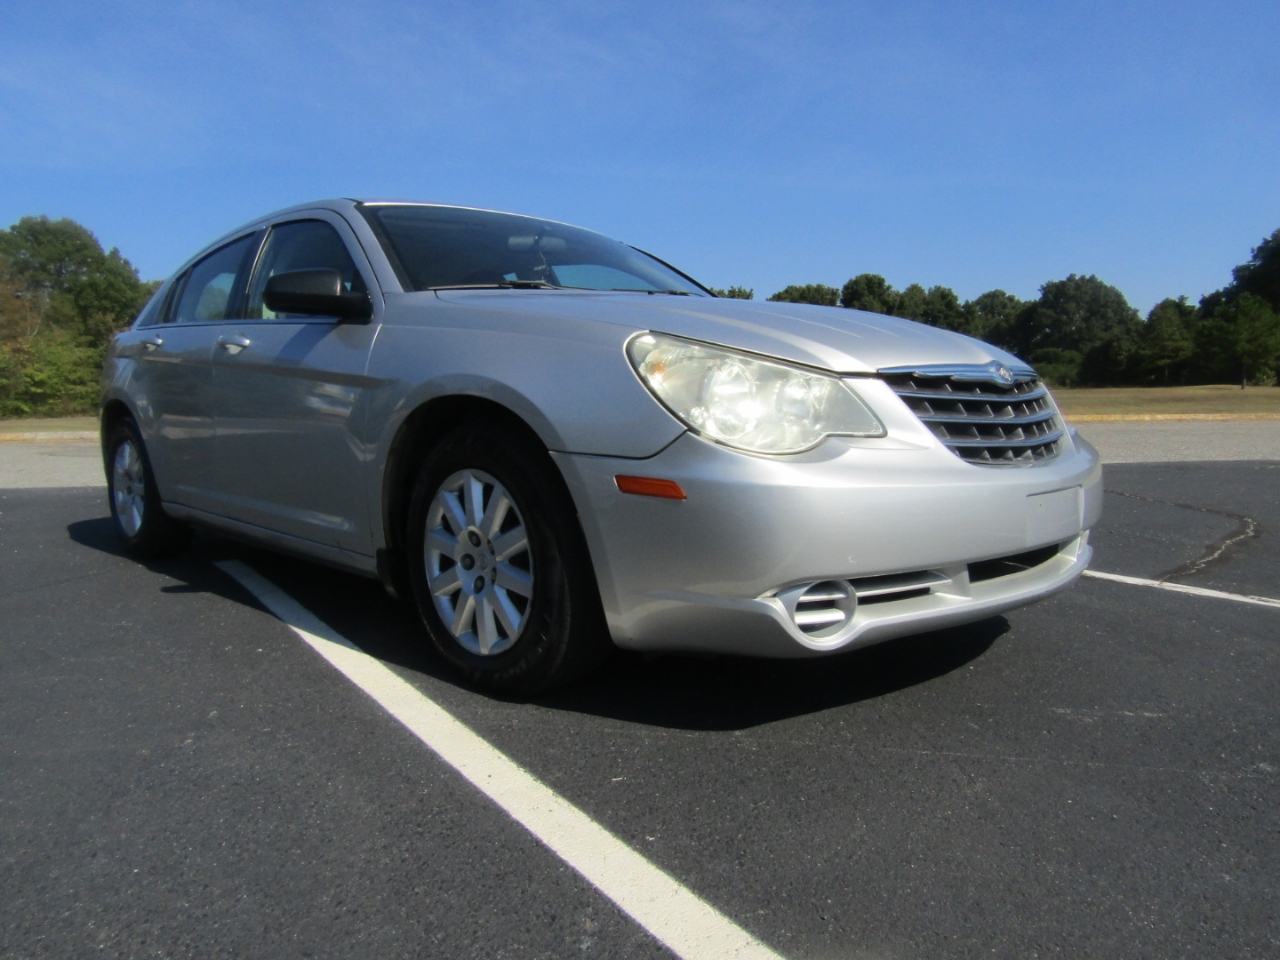 2009 Chrysler Sebring Sedan LX